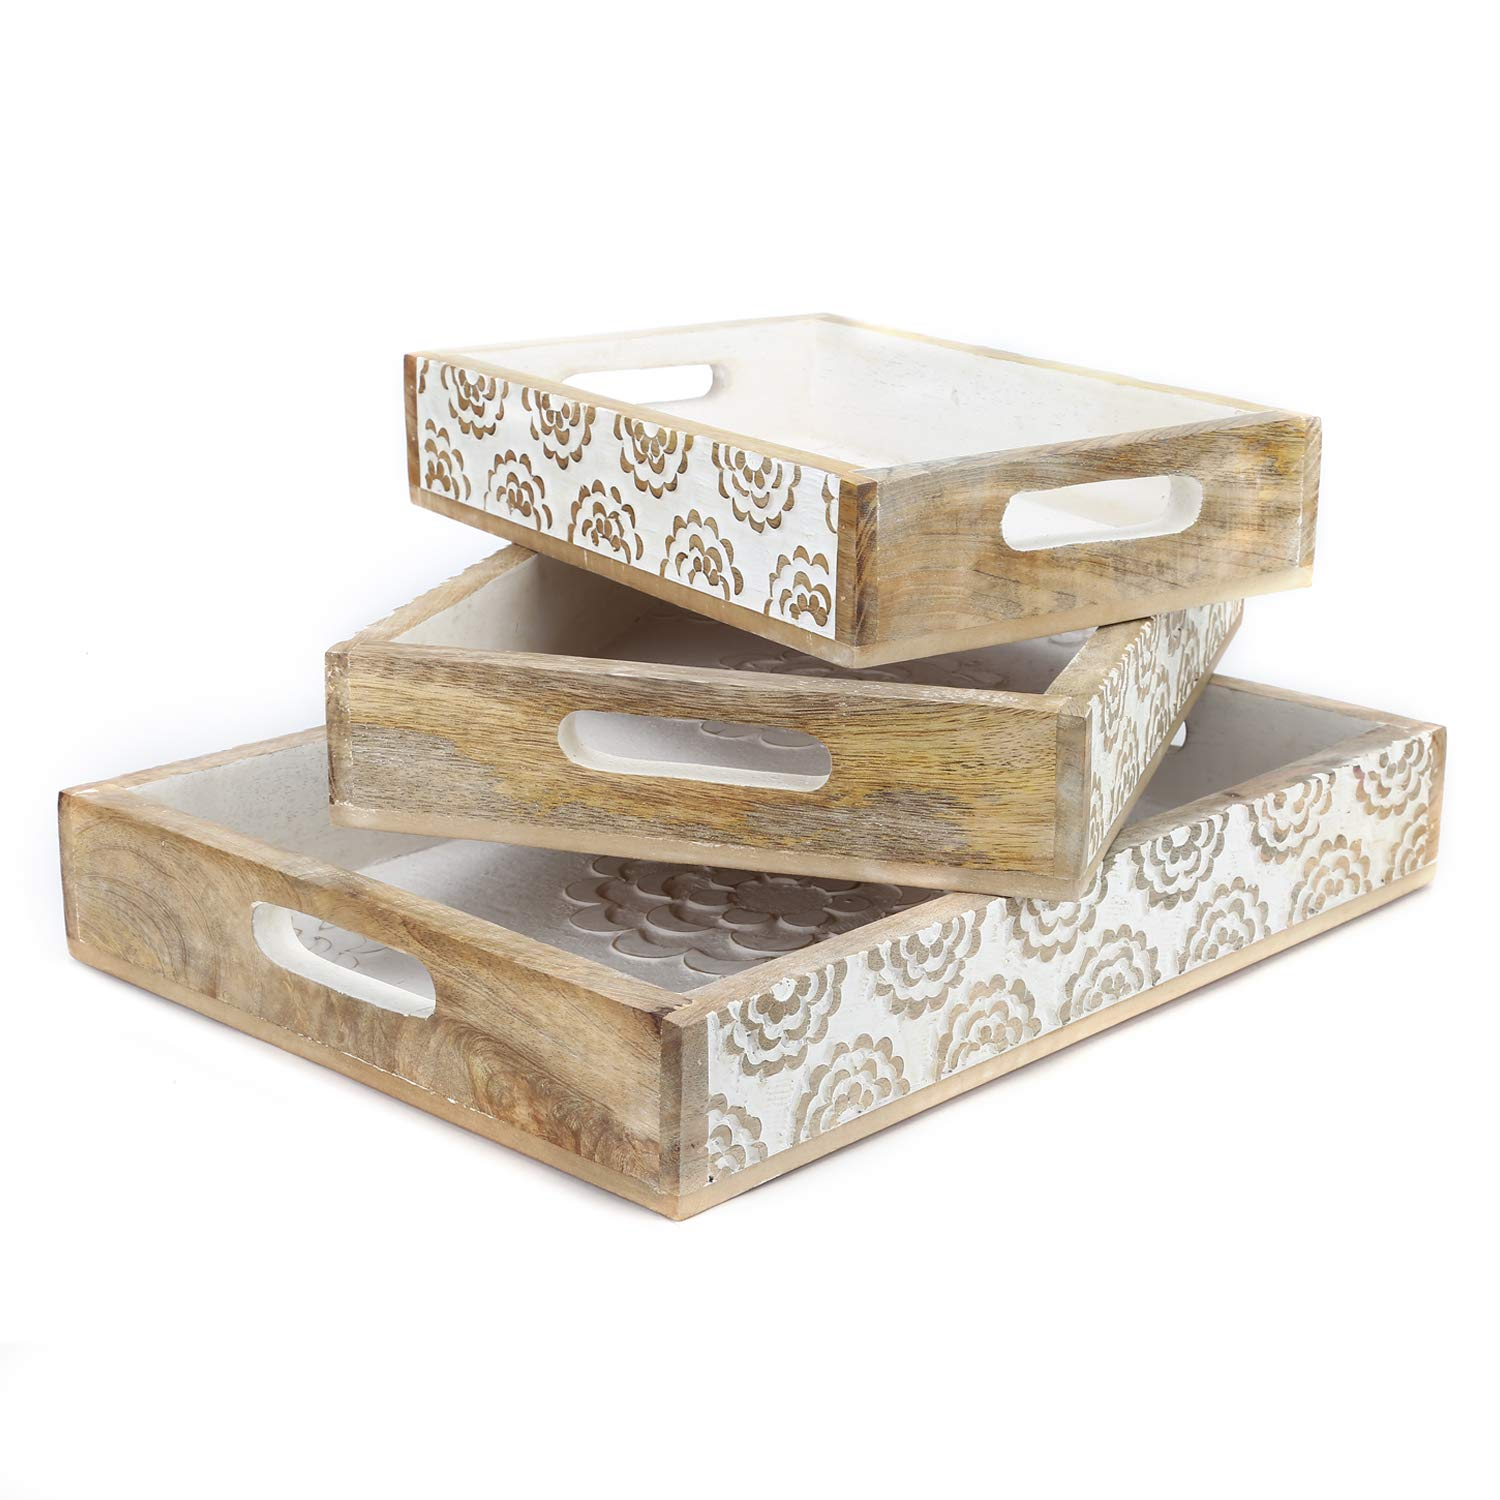 SAVON Rustic Wood Tray set of 3 torched nesting hand carved set white flowers wooden